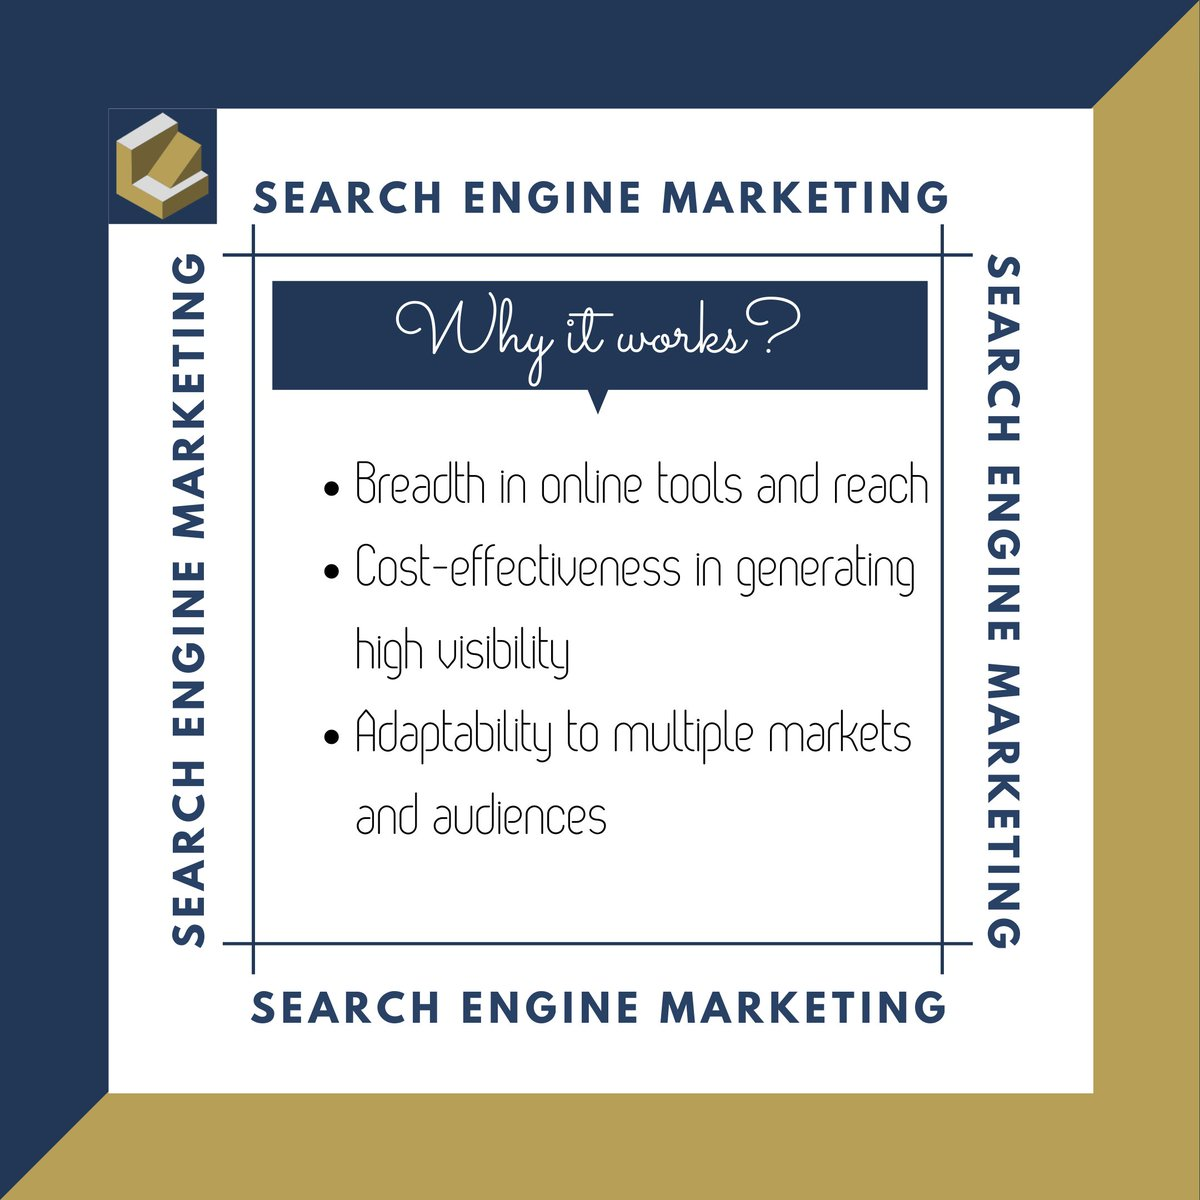 RT @TheBTeamOnline: One of the most used in my network, this strategy if used correctly can be a gamechanger. Thoughts? #SEM #searchenginemarketing #whyitworks #readmore #tuesdayvibes #MarketingDigital #marketinsights #marketing #marketingforthenowpic.twitter.com/Q68kI80UQV